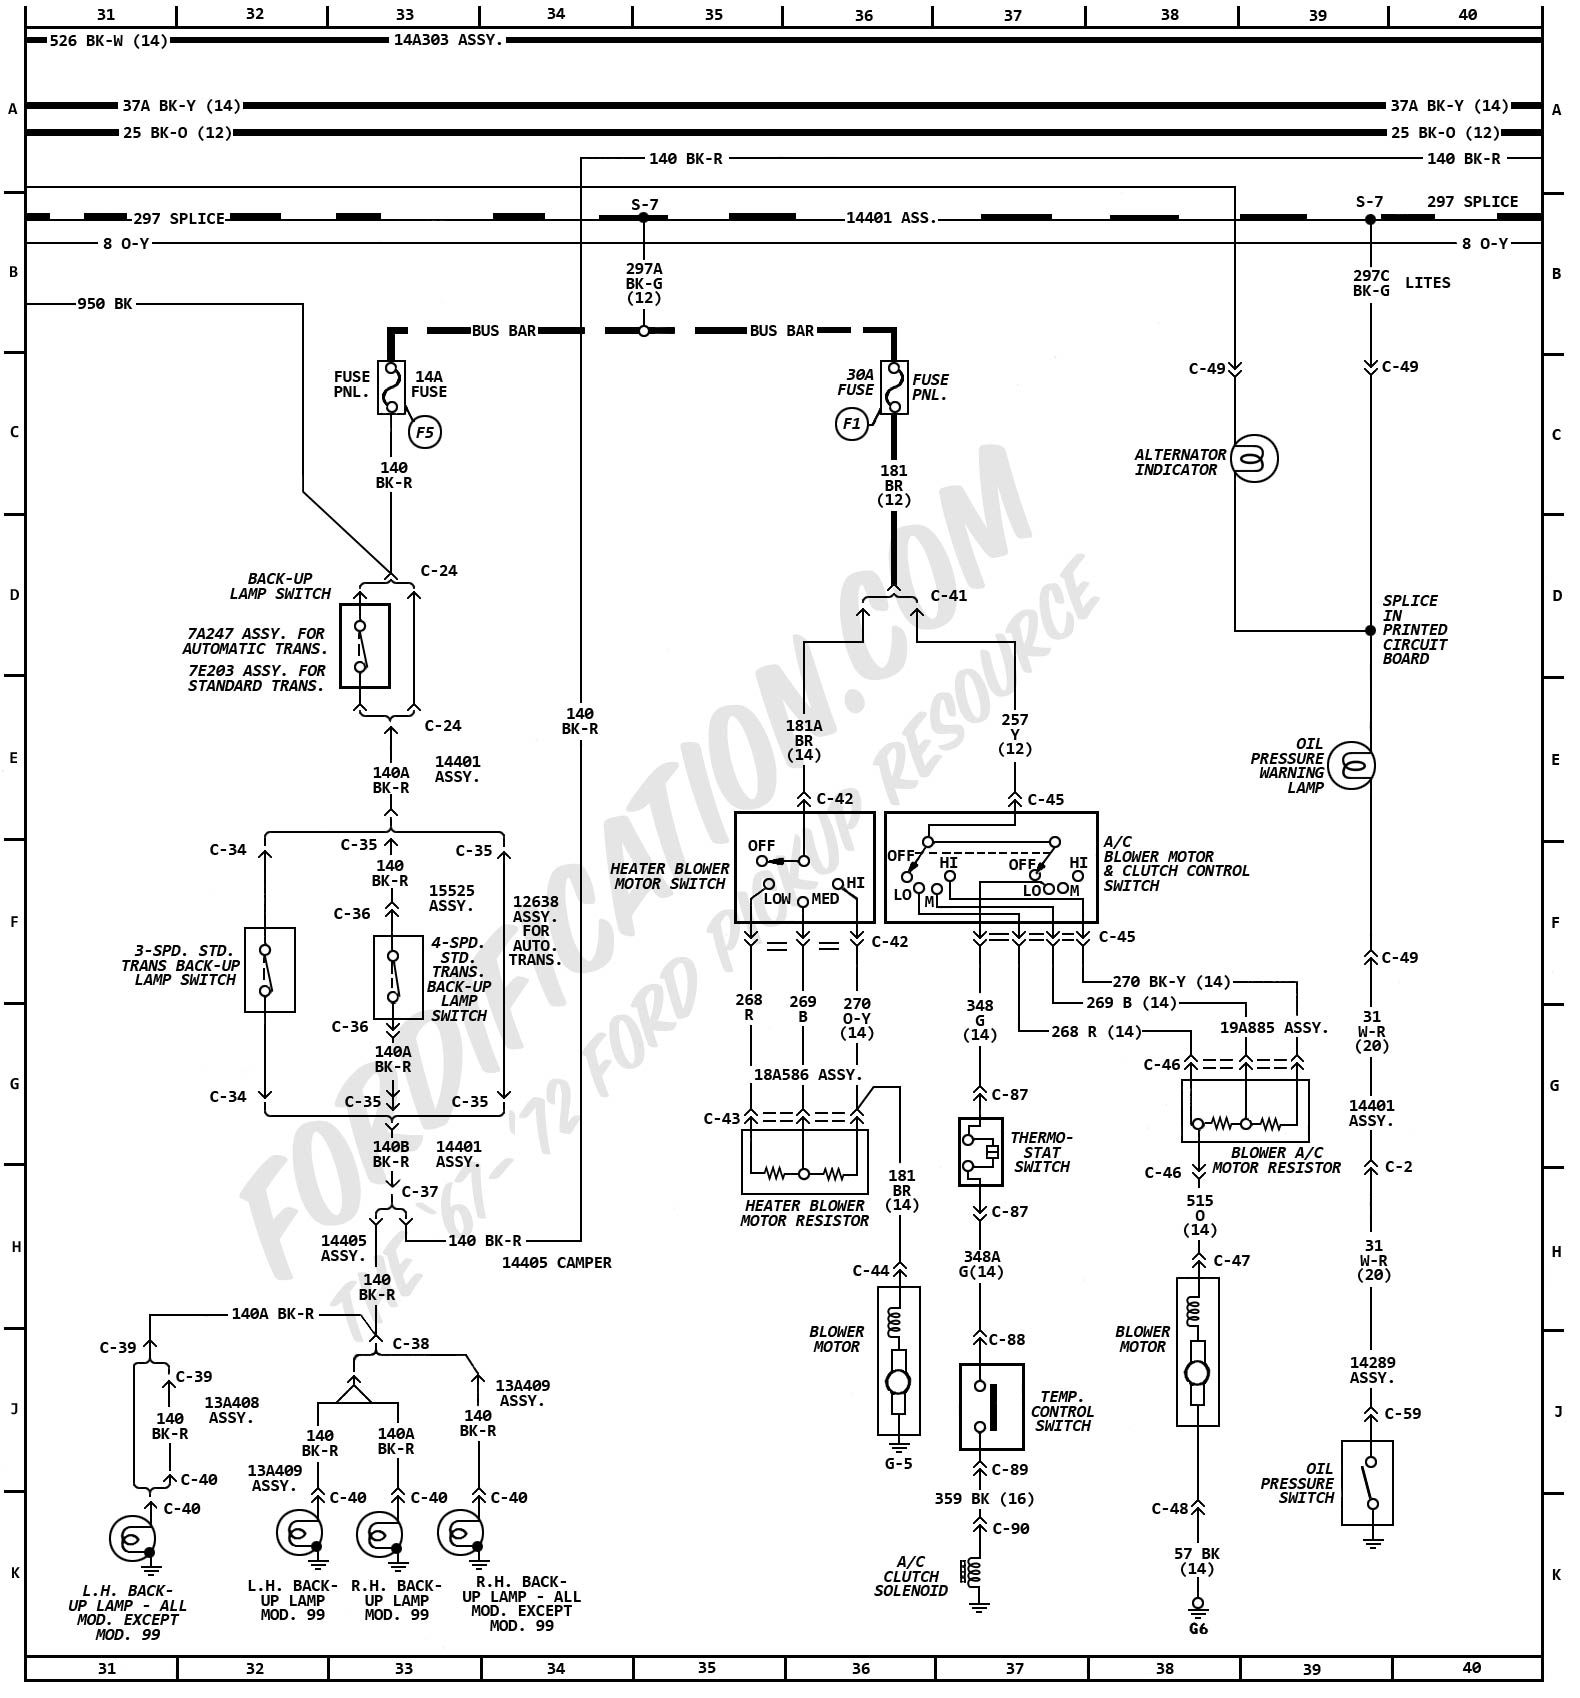 1970 Ford F 250 Fuse Box Diagram Wiring Library 2002 1972 F250 Switch U2022 Rh 140 82 24 126 Wiper Motor